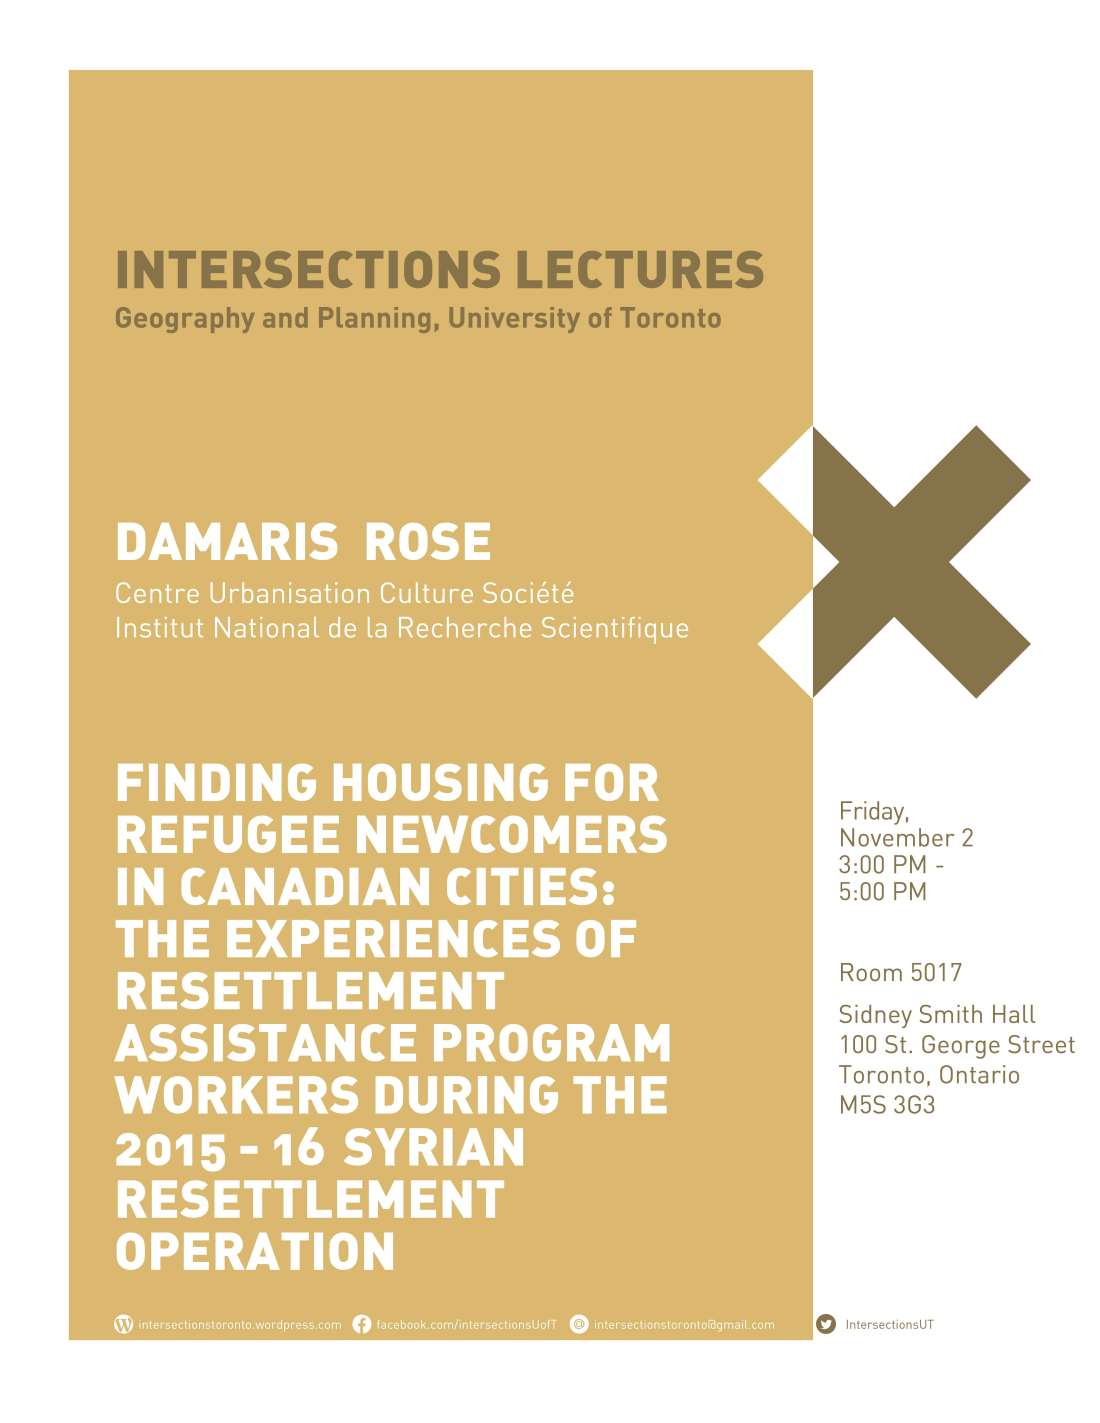 Intersections 2018-19 Posters_Damaris Rose